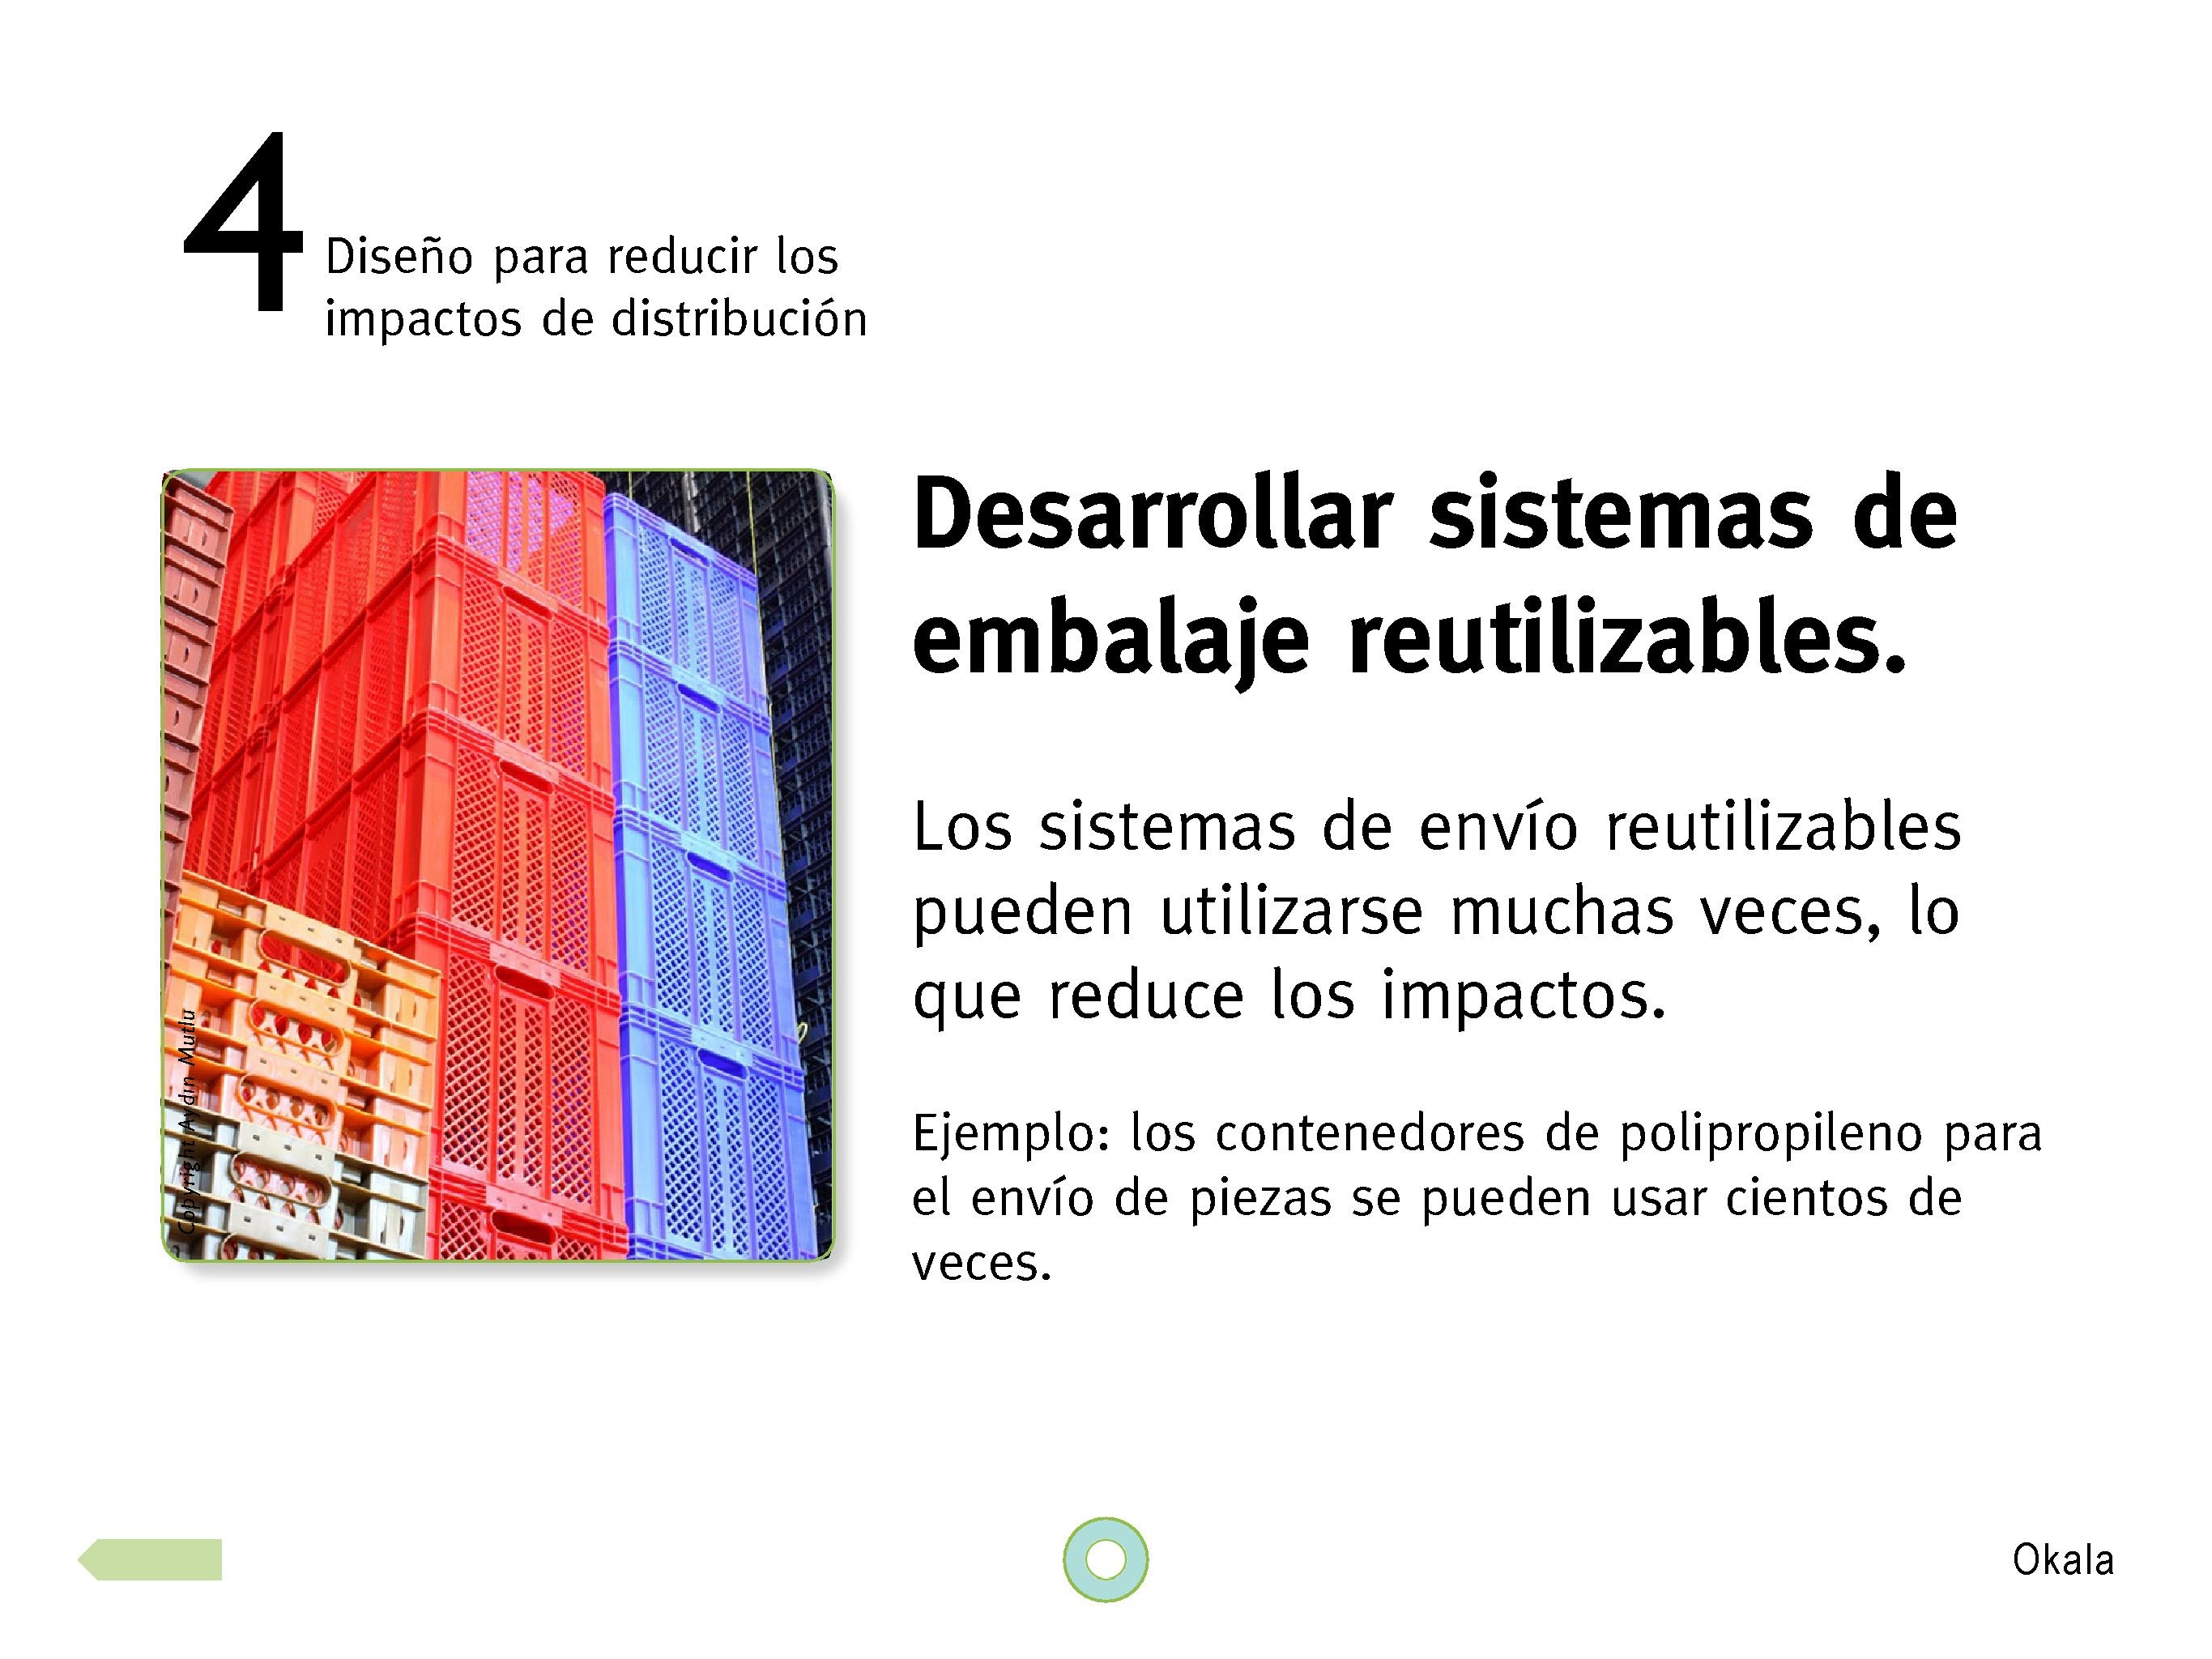 okala-ecodesign-strategy-guide-2012-spanish.new_page_24-1